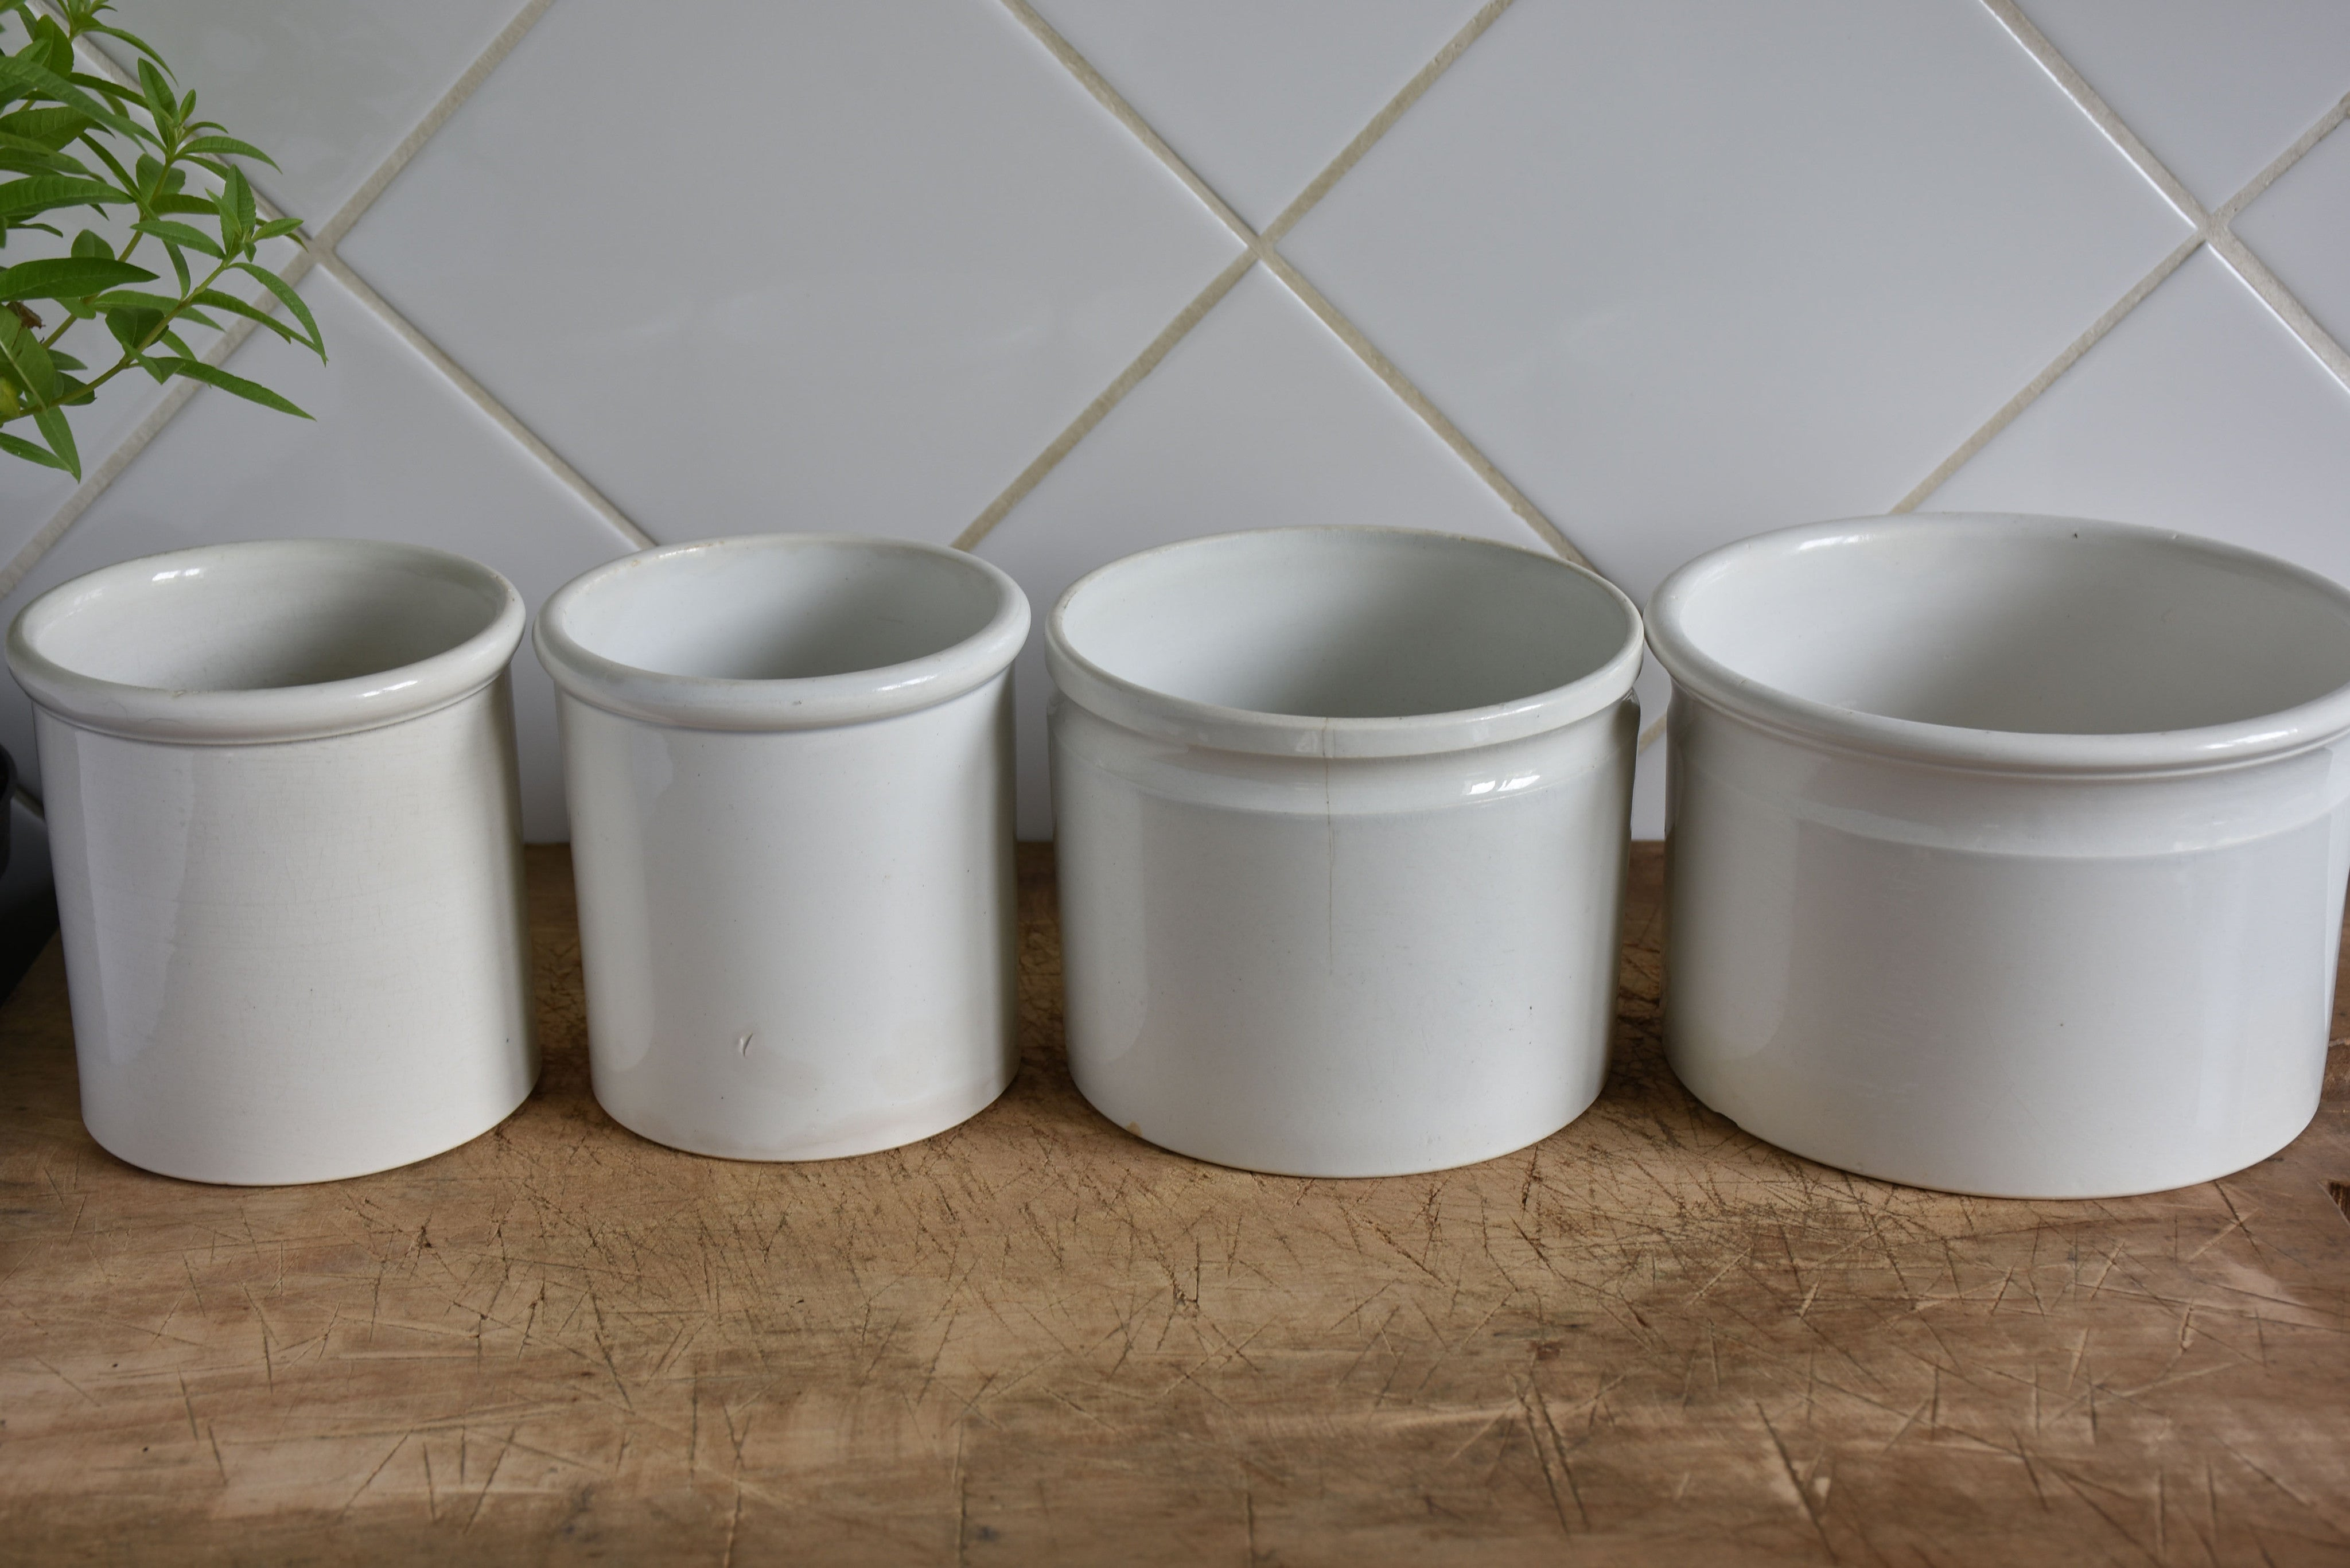 19th century French ironstone preserving jars – Four